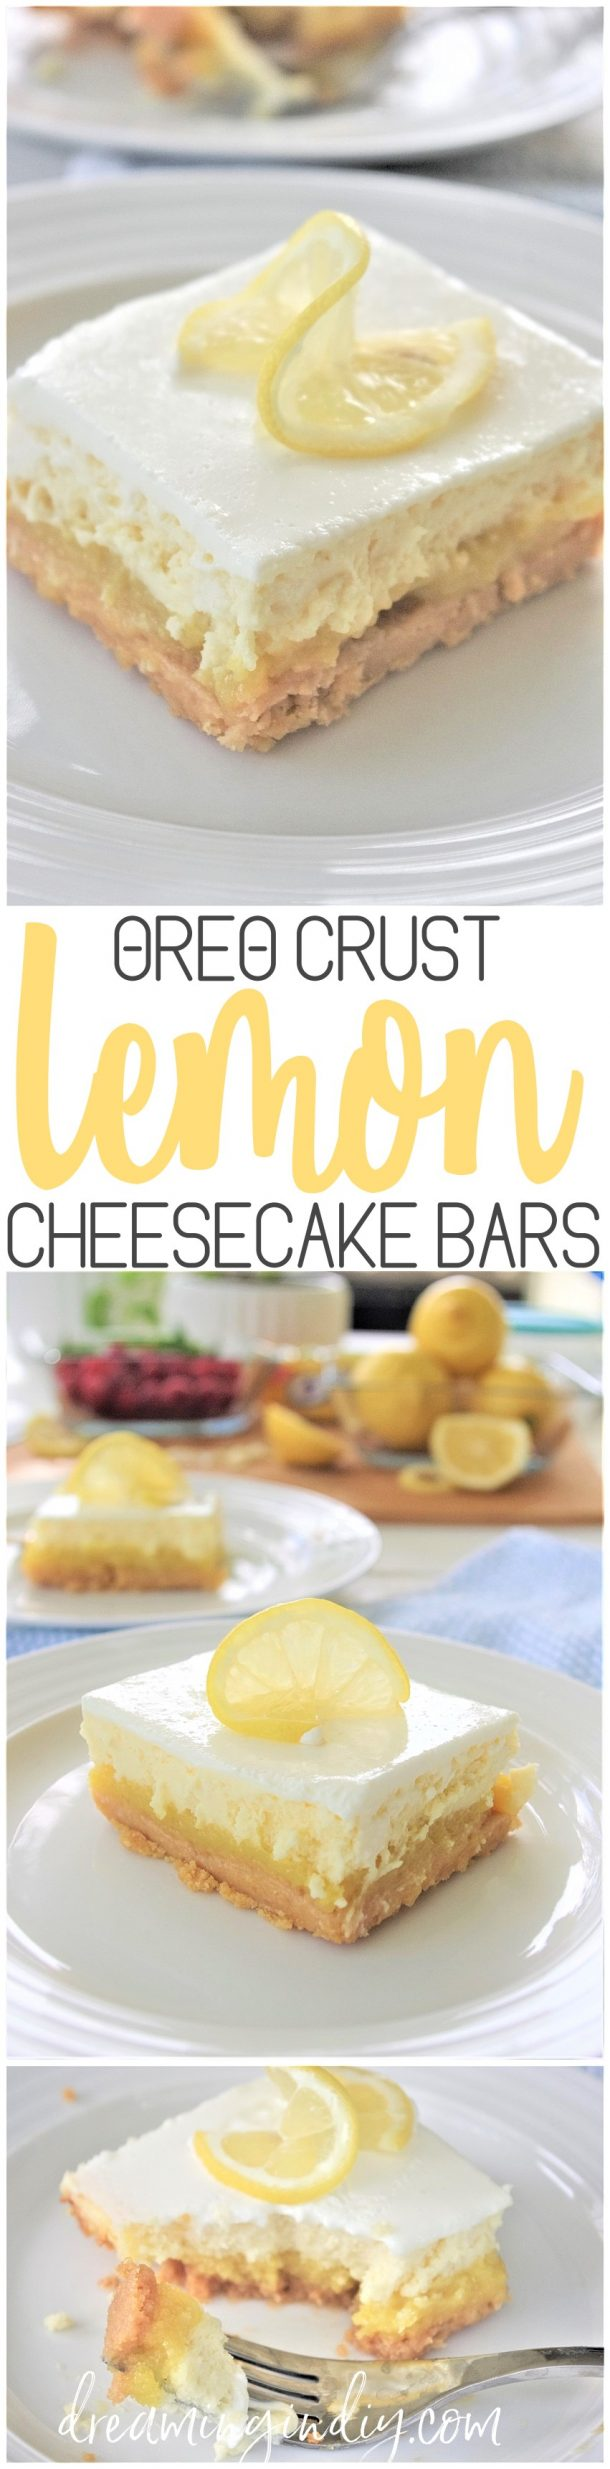 Oreo Crust Easy Sour Cream Lemon Layered Cheesecake Dessert Bars Recipe via Dreaming in DIY #dessertbars #cookiebars #barsrecipes #dessertforacrowd #partydesserts #christmasdesserts #holidaydesserts #onepandesserts